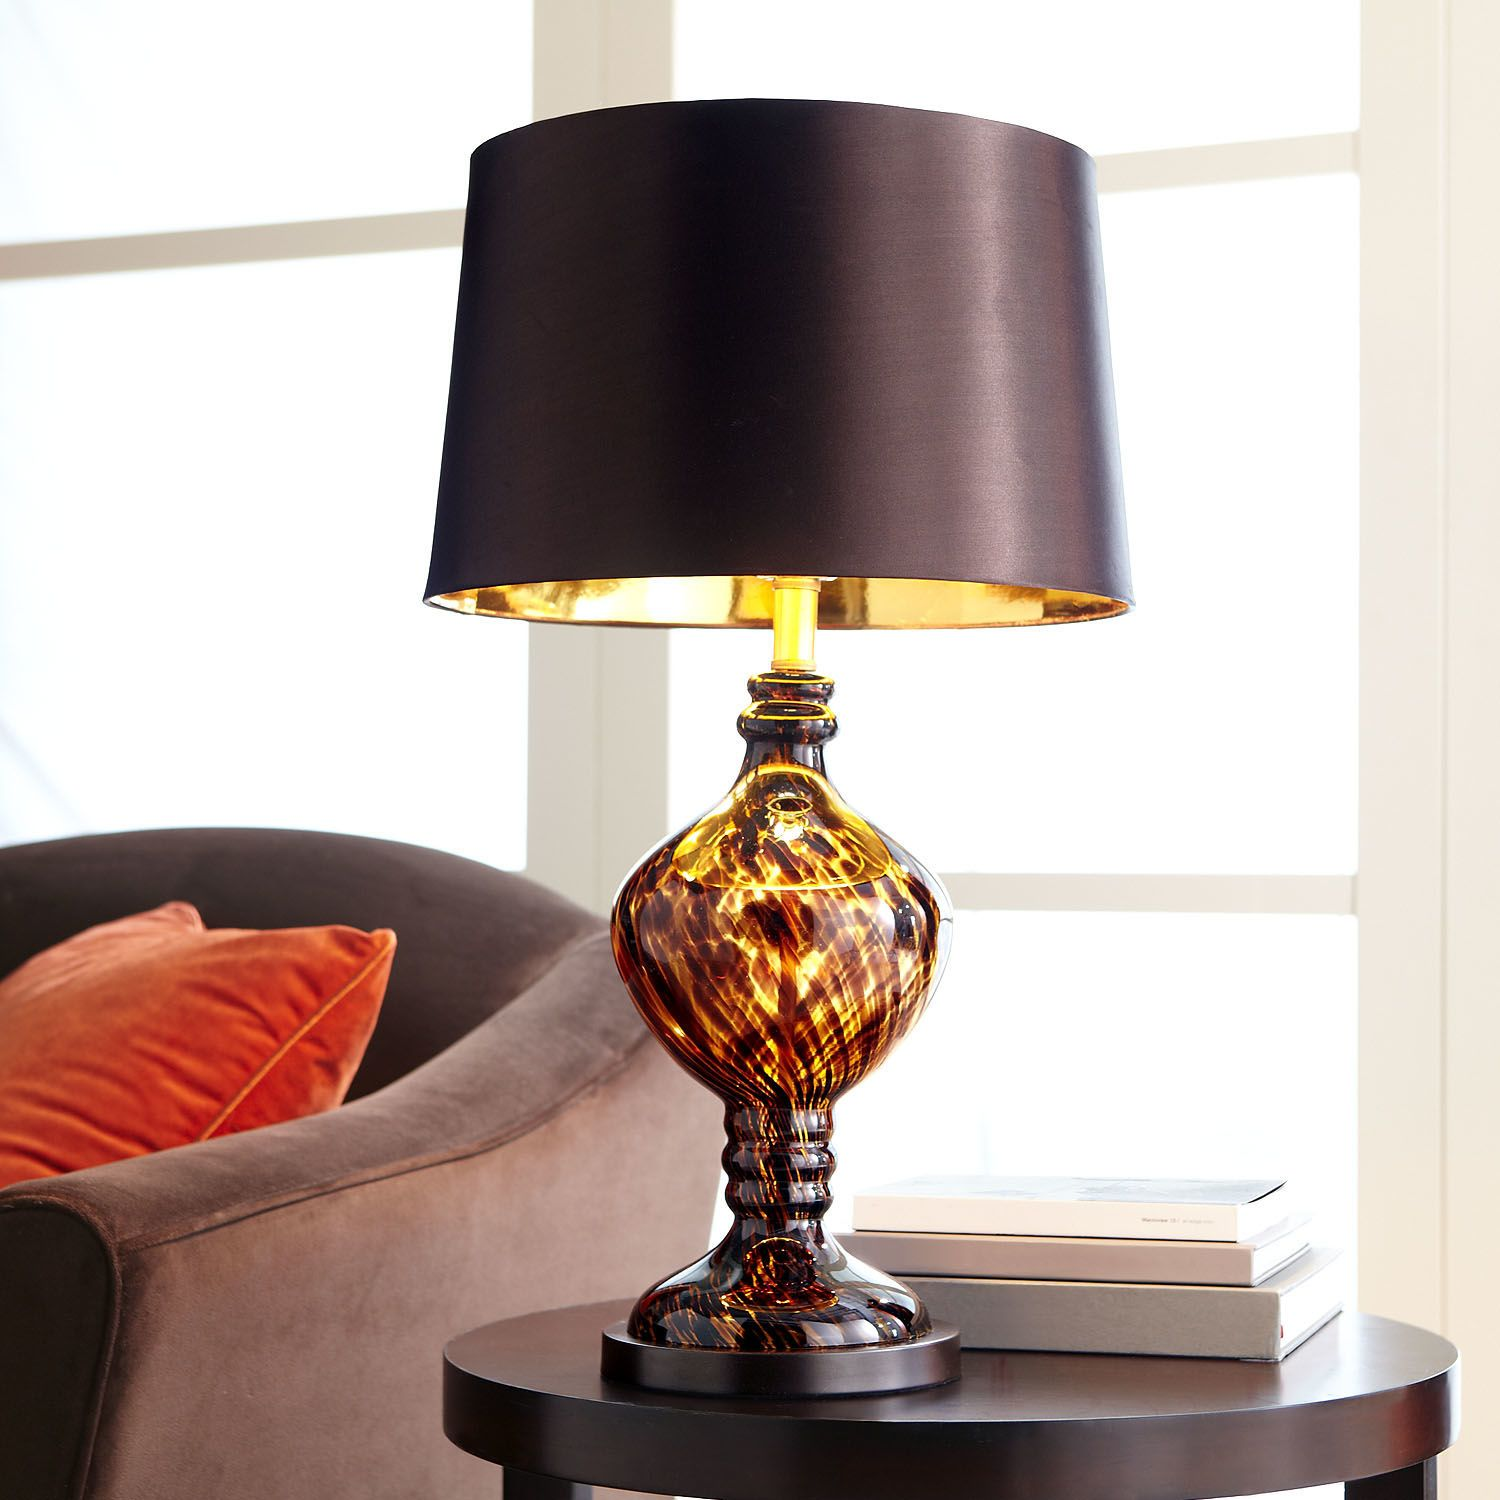 Tortoise Glass Lamp Pier 1 Imports Home Ideas Table Lamp